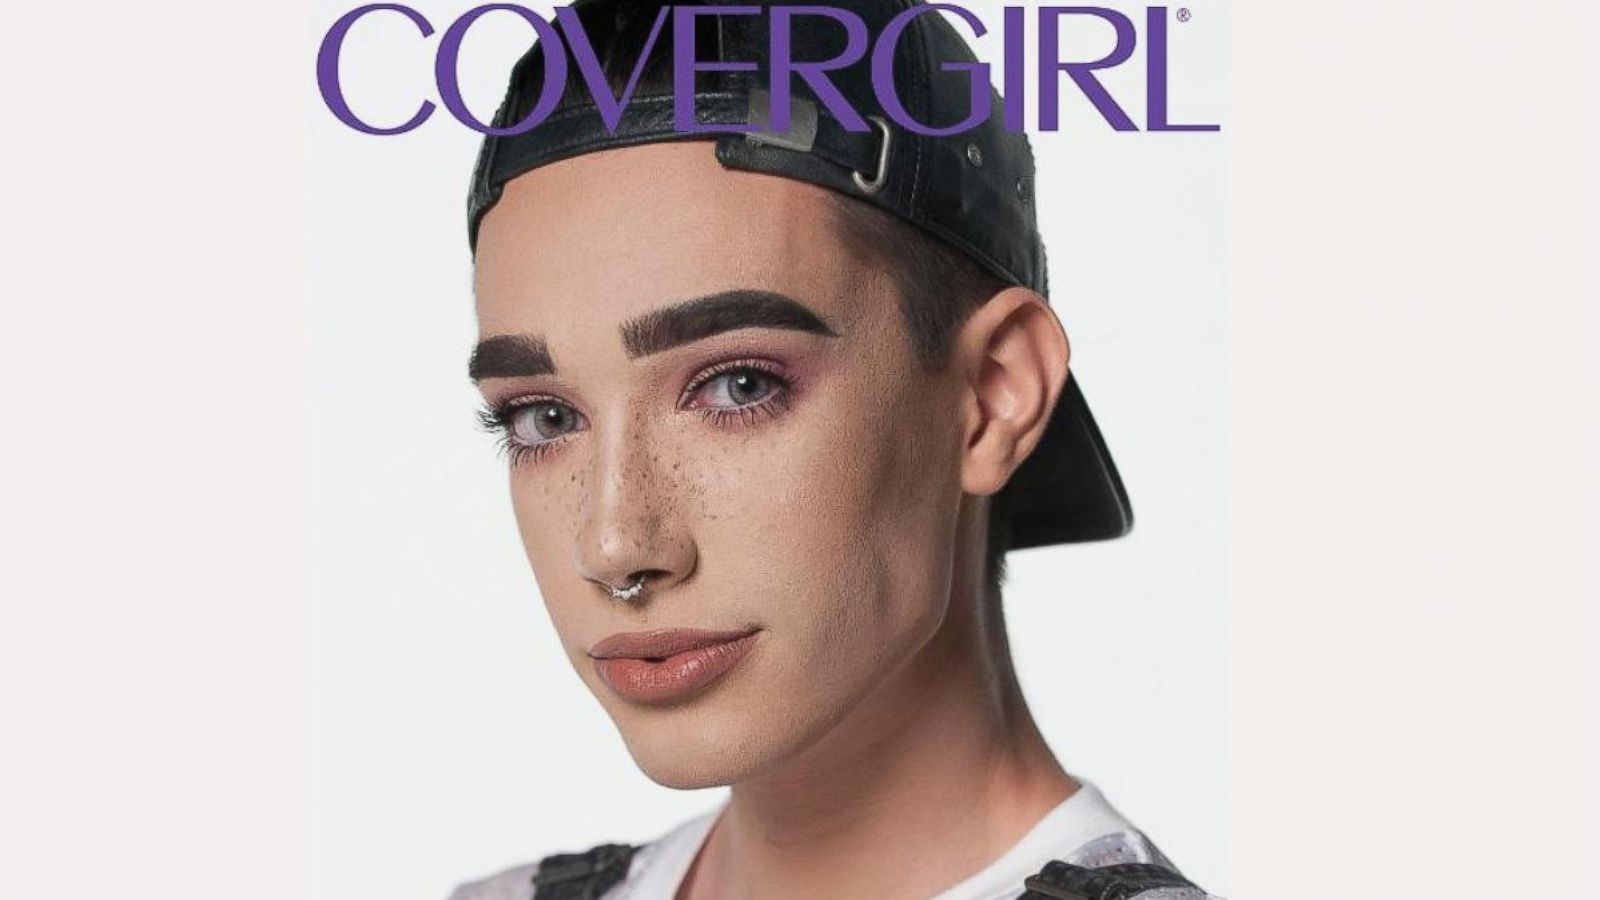 James Charles, Covergirl's first ever Coverboy is credited as one of the most successful male beauty gurus on YouTube. Image  via